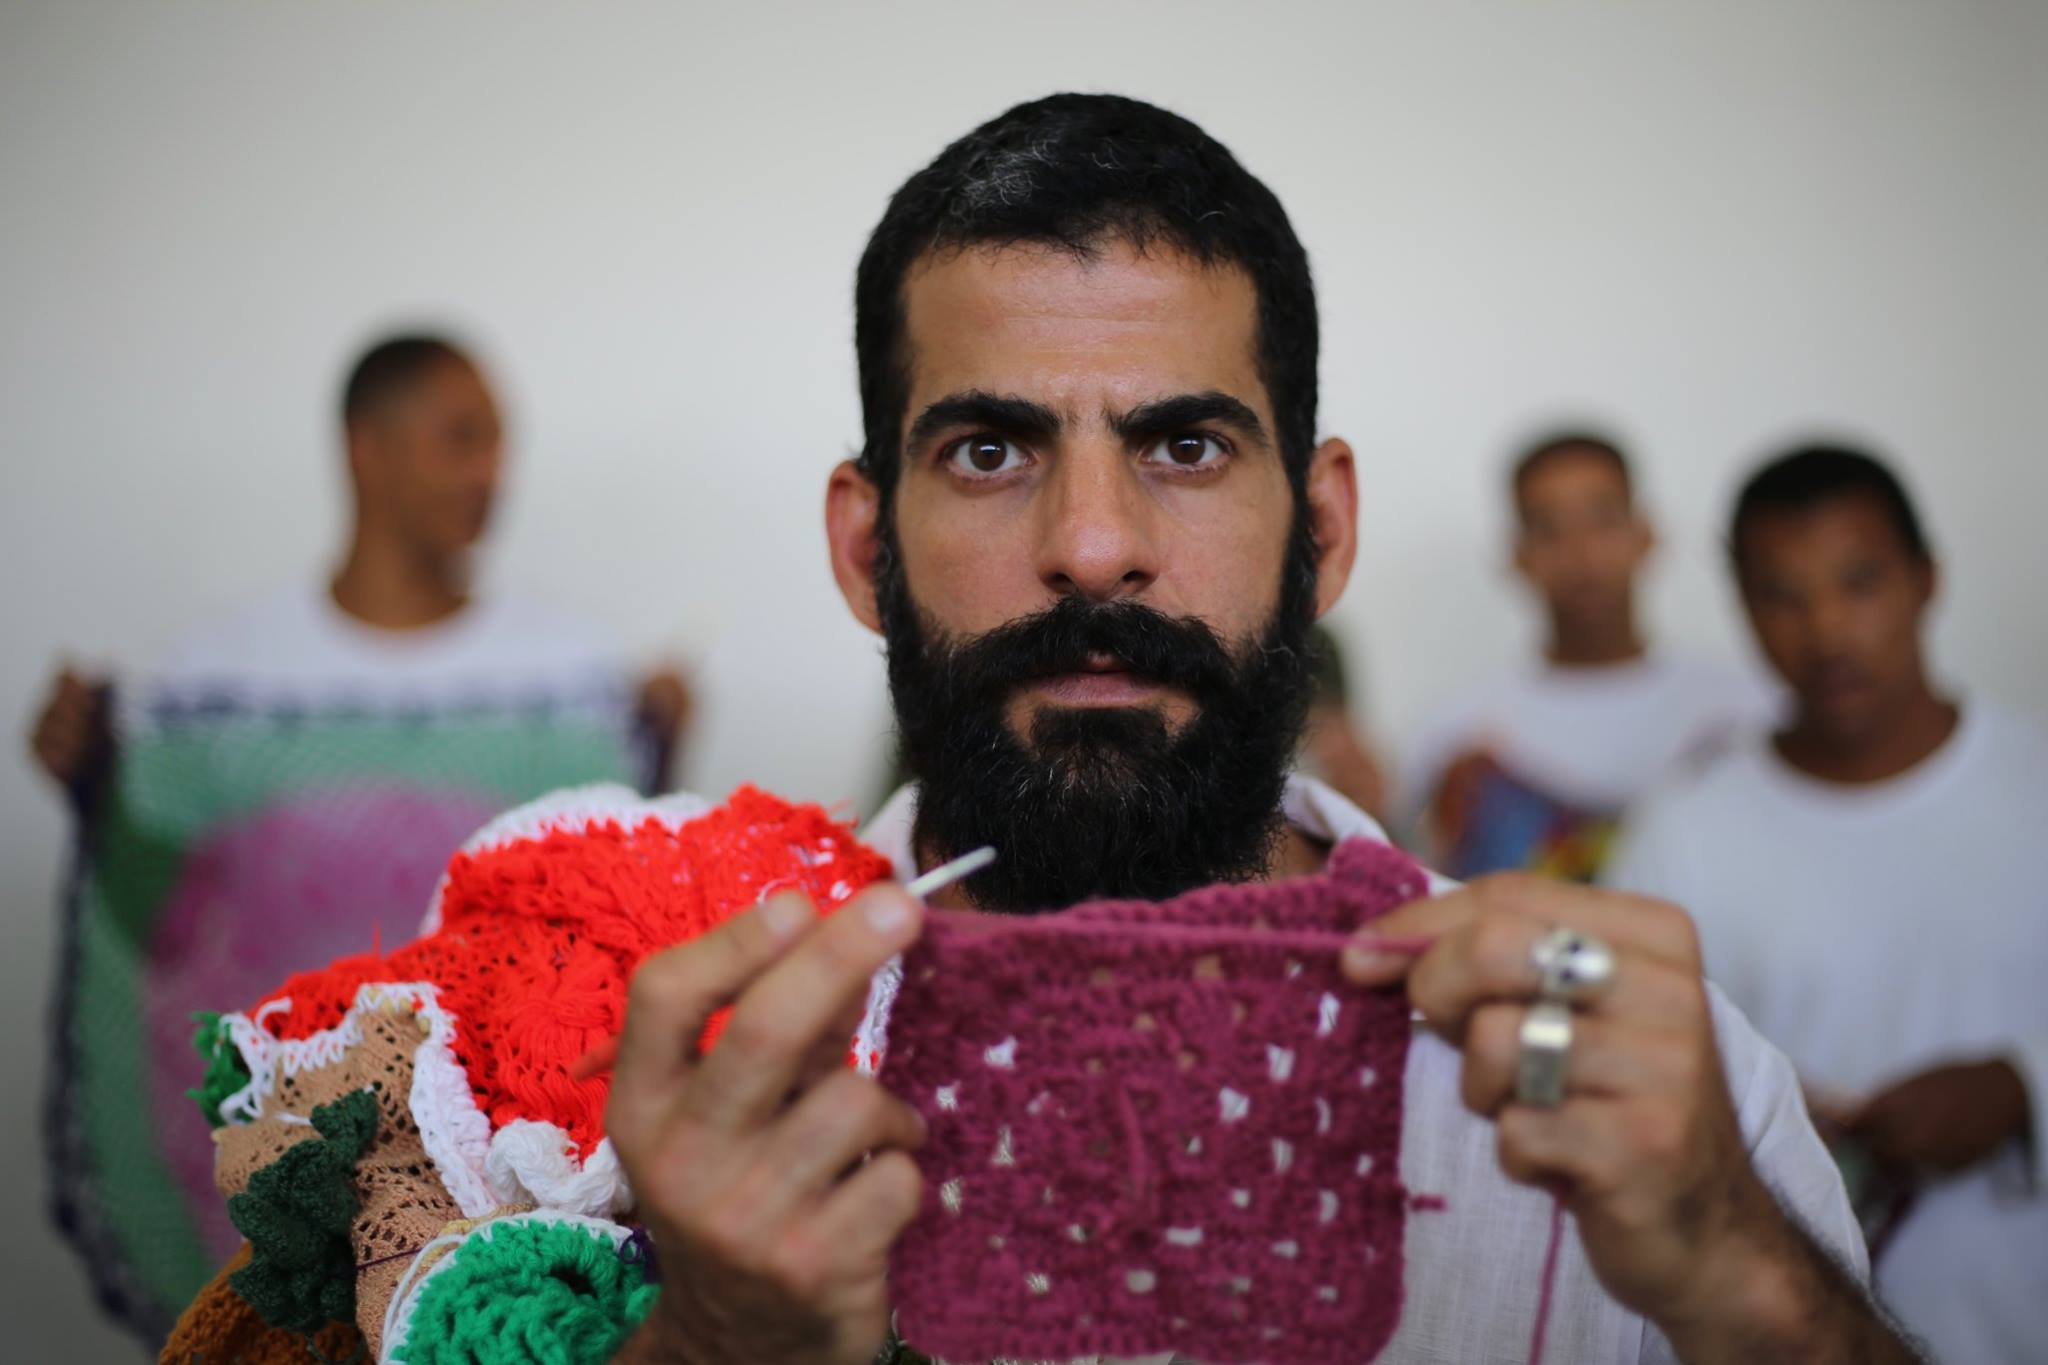 A stitch of hope: Brazilian prisoners who learn crotchet surprise runways